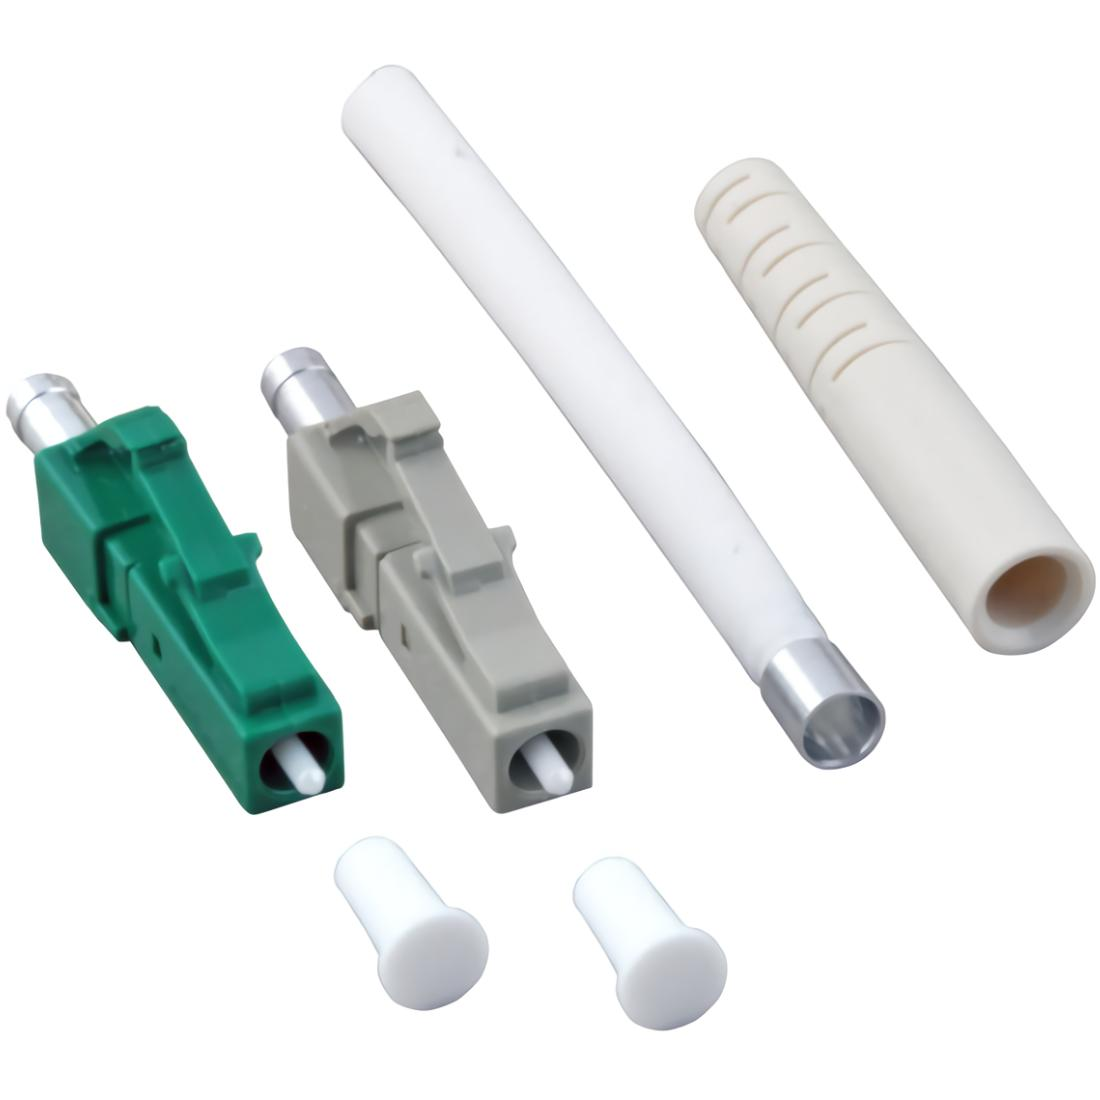 LC connector - Multimode 127 µm ferrule keramische fitting